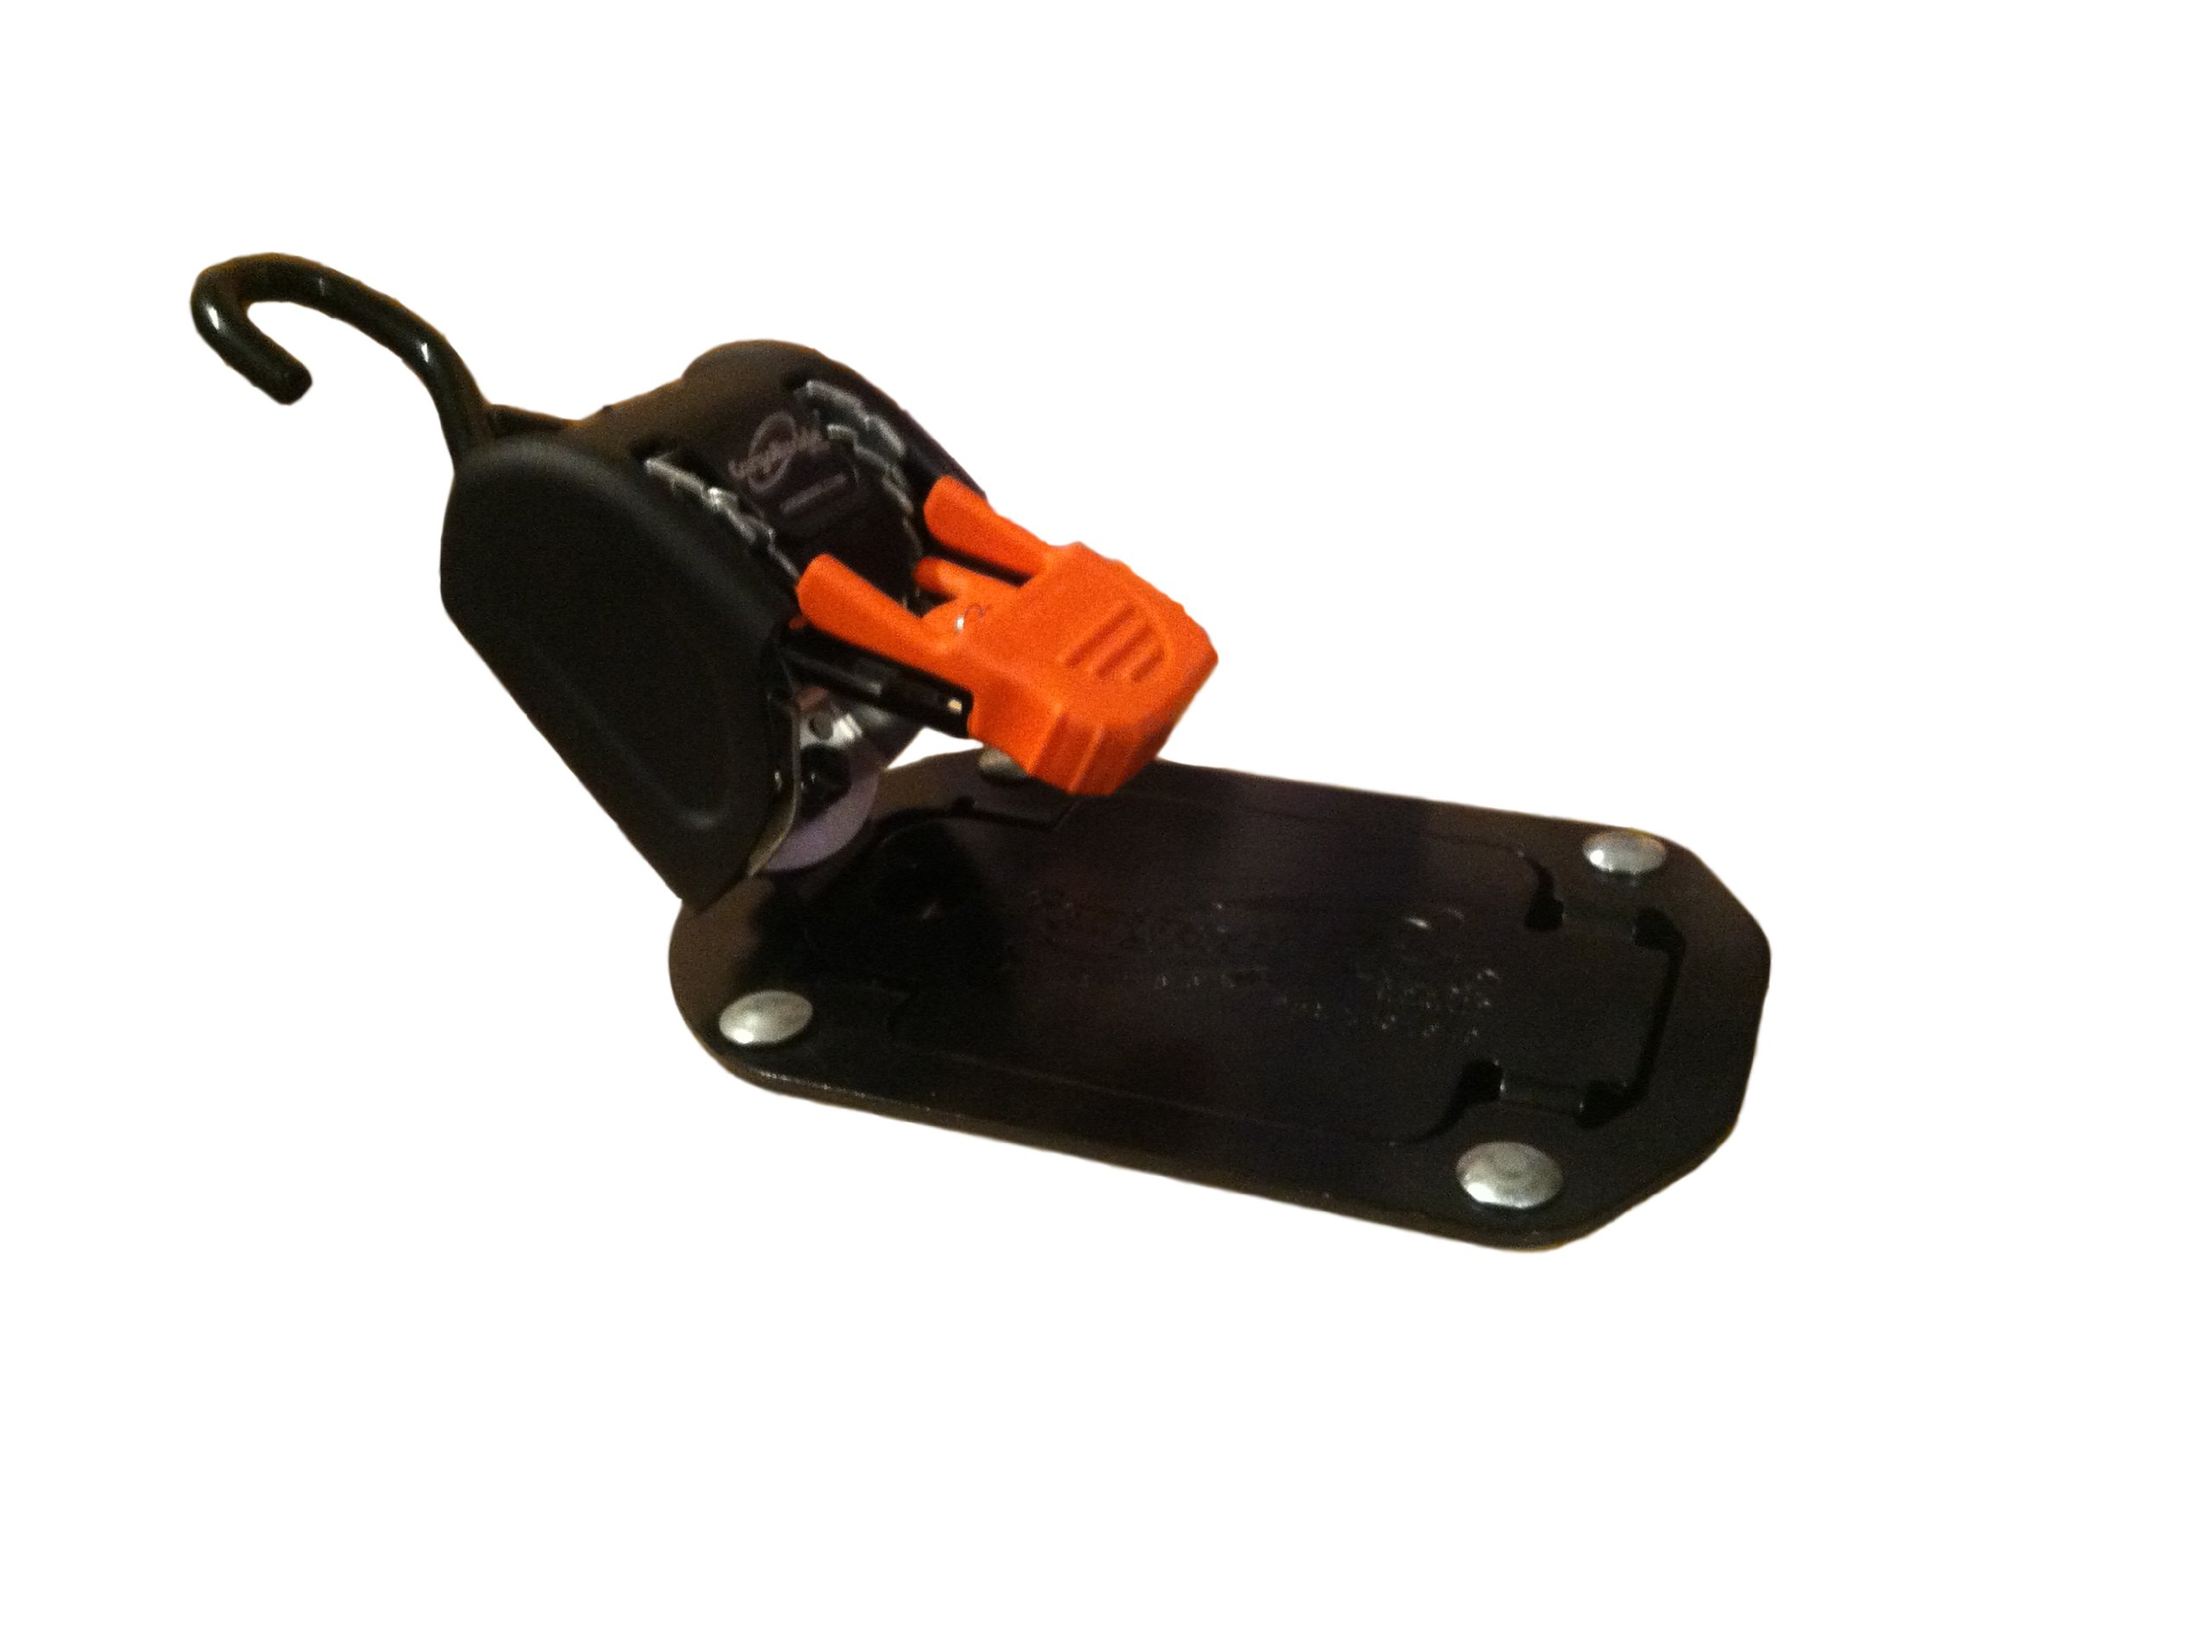 Lock N Load F18804 Black/Orange Flush Mount Bike Tie-Down Strap